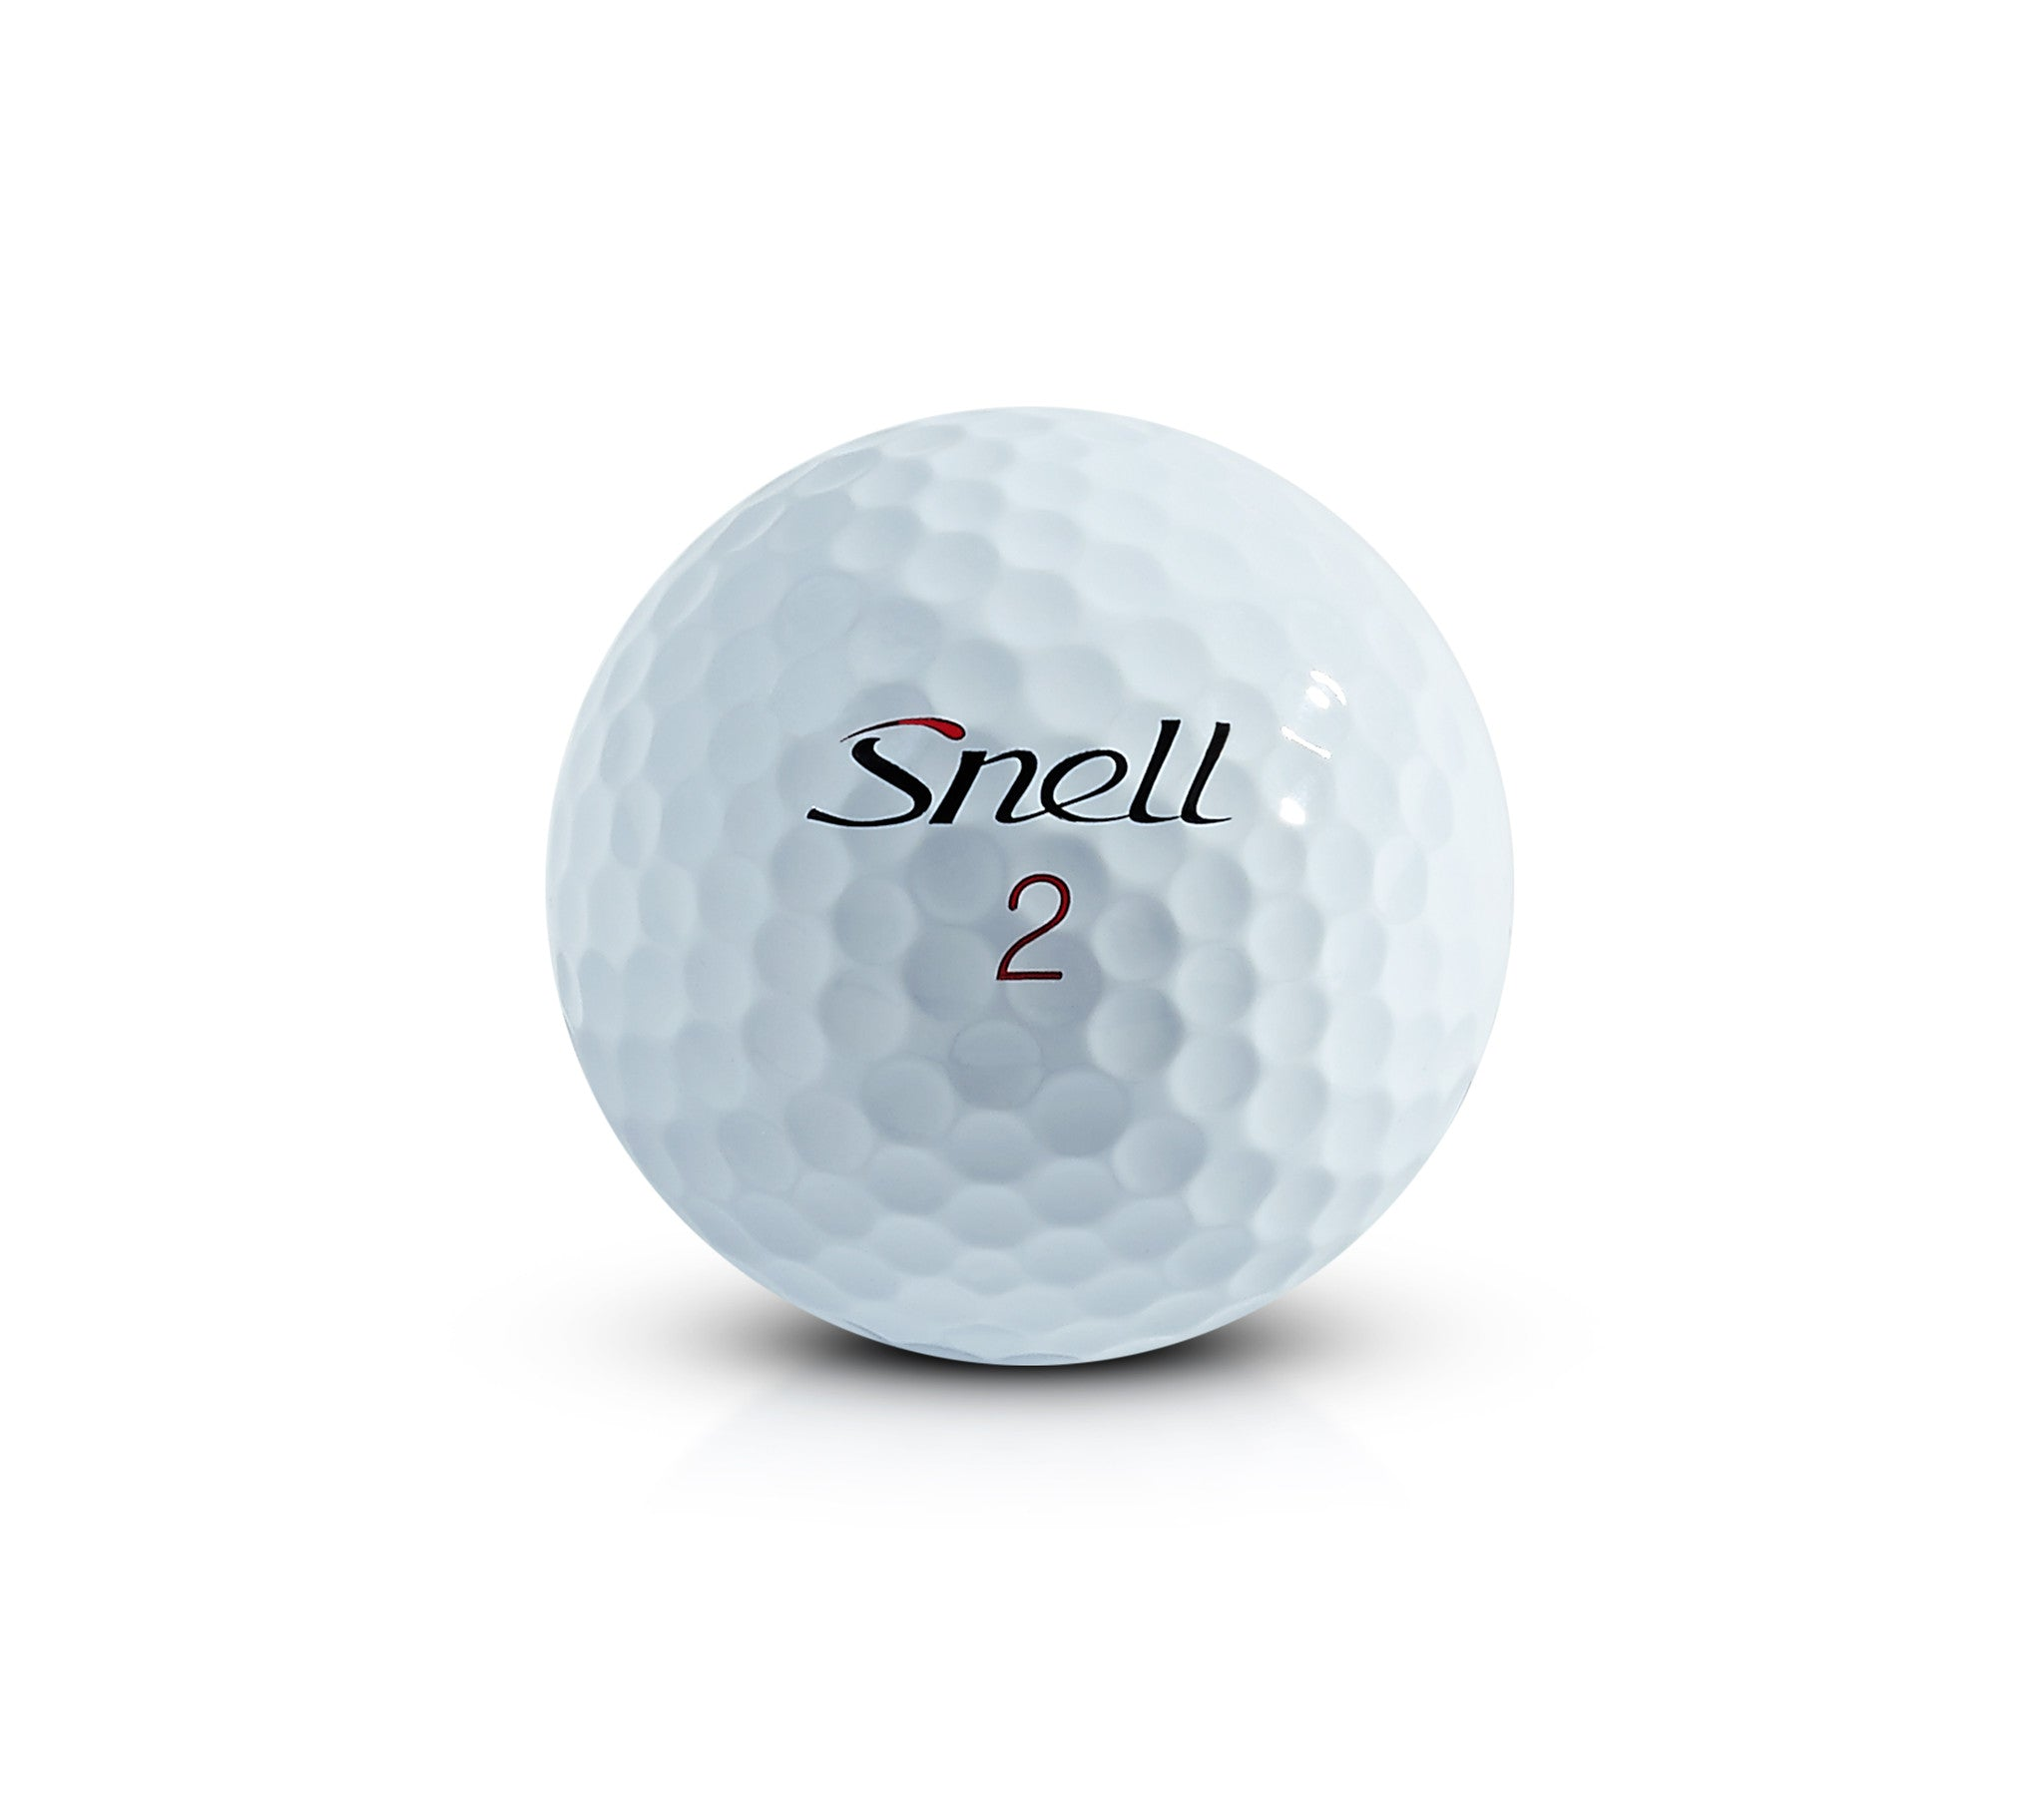 Dimple patterns and their flight effect - Snell Golf